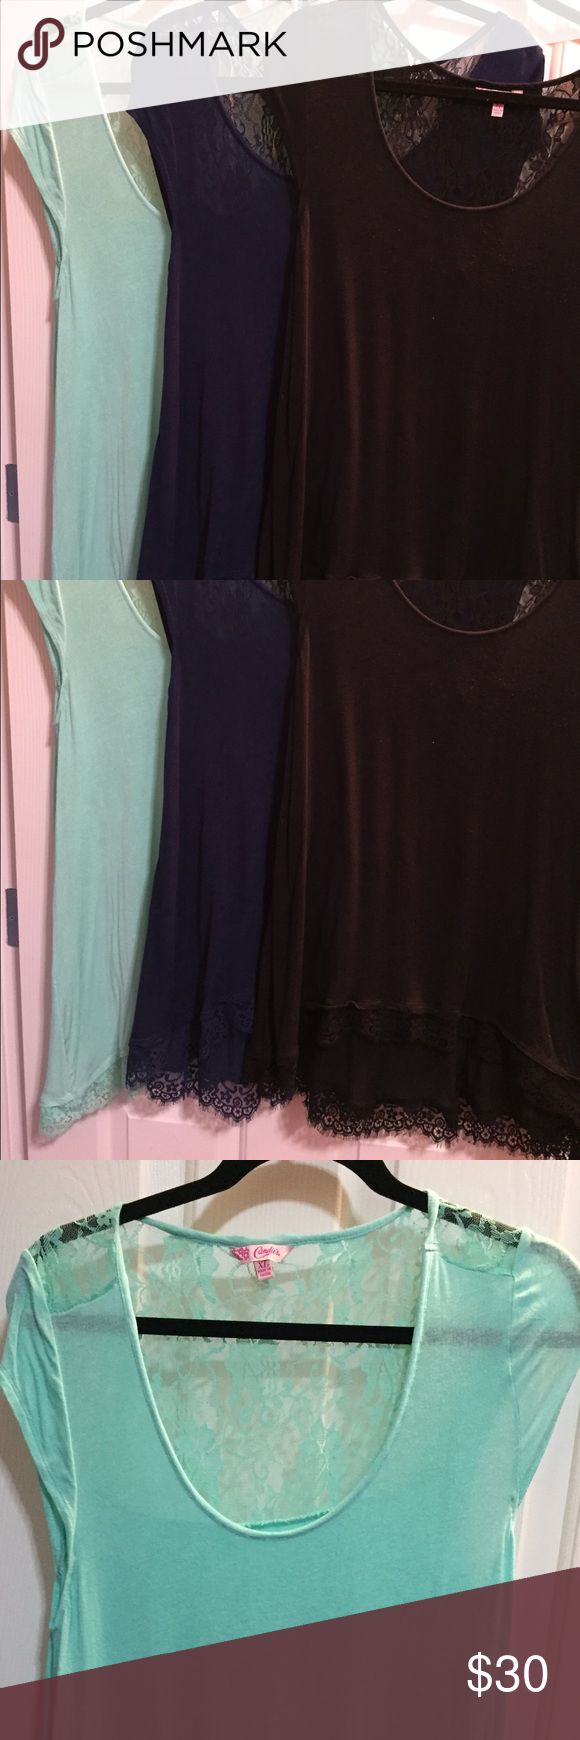 Candies Lace Tops/ Tunic for leggings size XL 3 size XL Candie's tops/tunics that pair great with leggings. Lace top and Lace bottom. Aqua, navy & black. Smoke free and clean. Take all 3 home! Make an offer! Candie's Tops